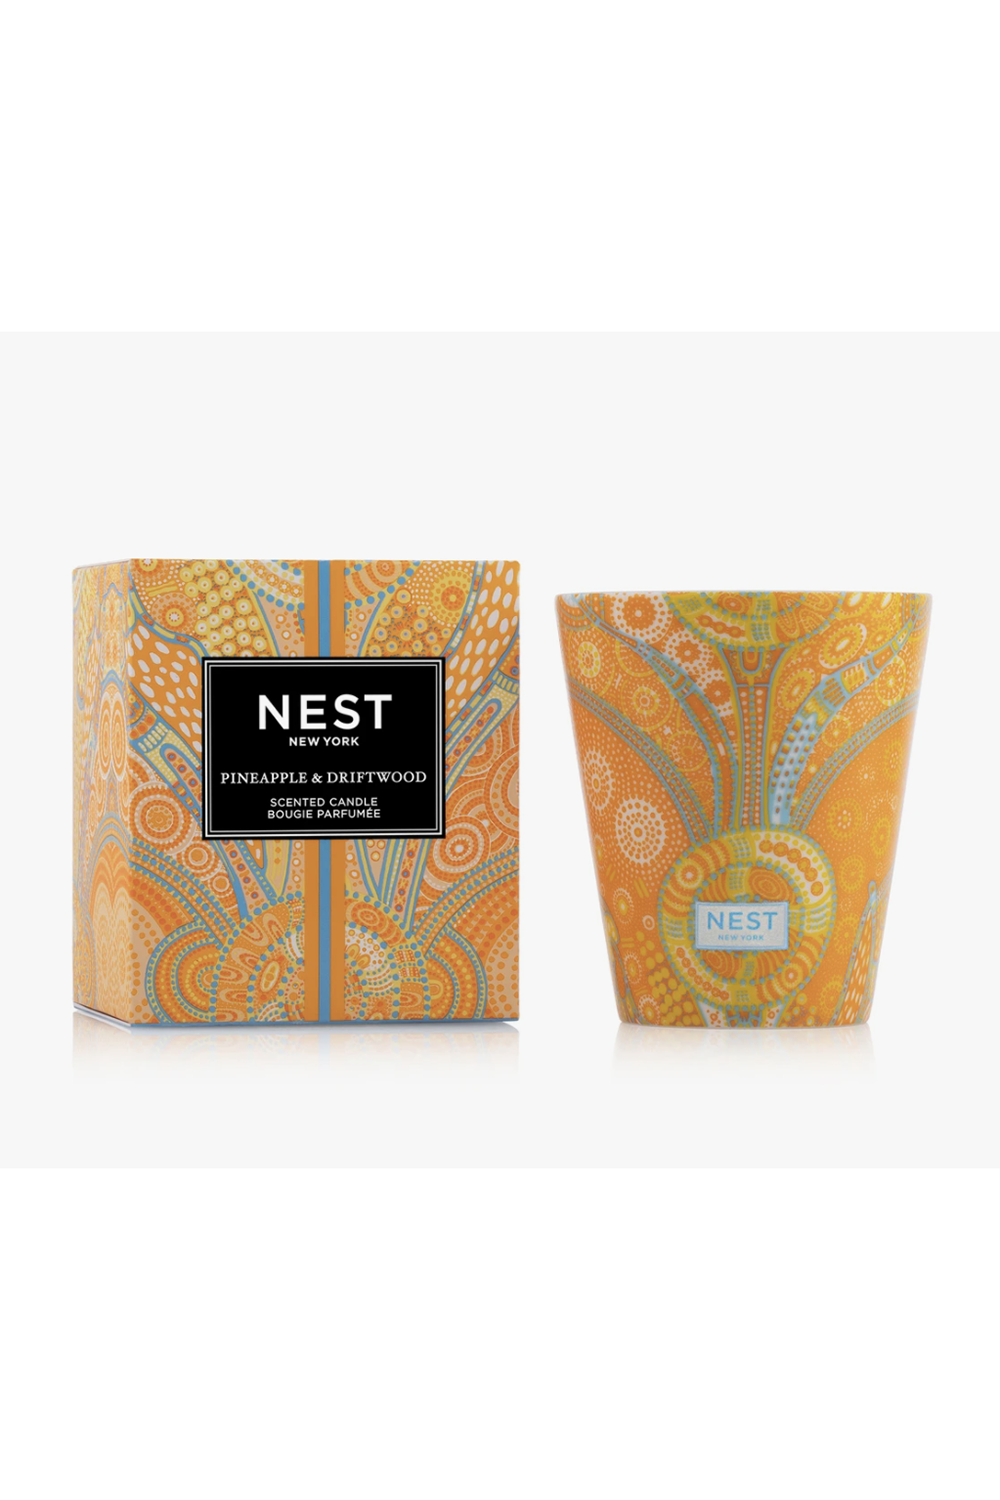 Nest Classic Summer Candle - Pineapple & Driftwood